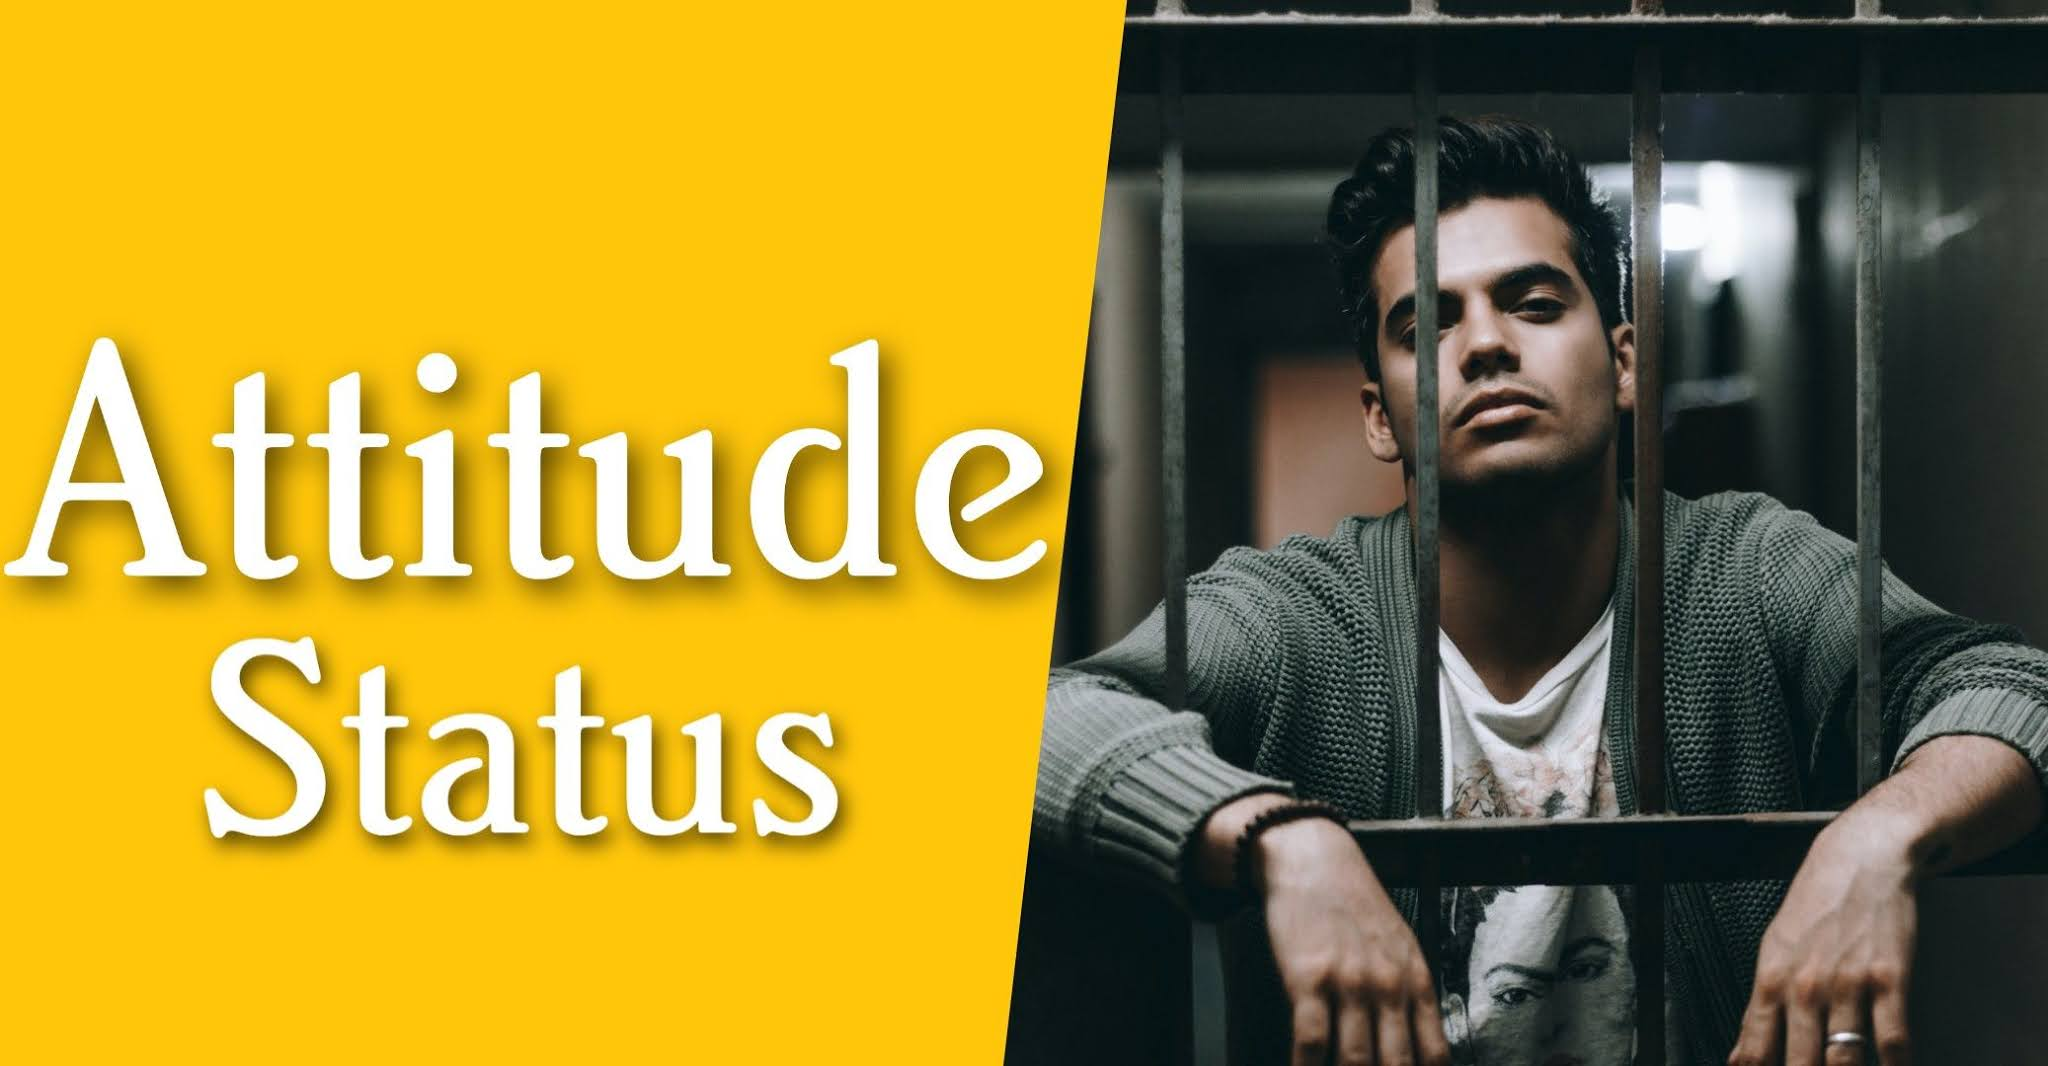 Attitude Status in Hindi for Boys and Girls NewsFox.in